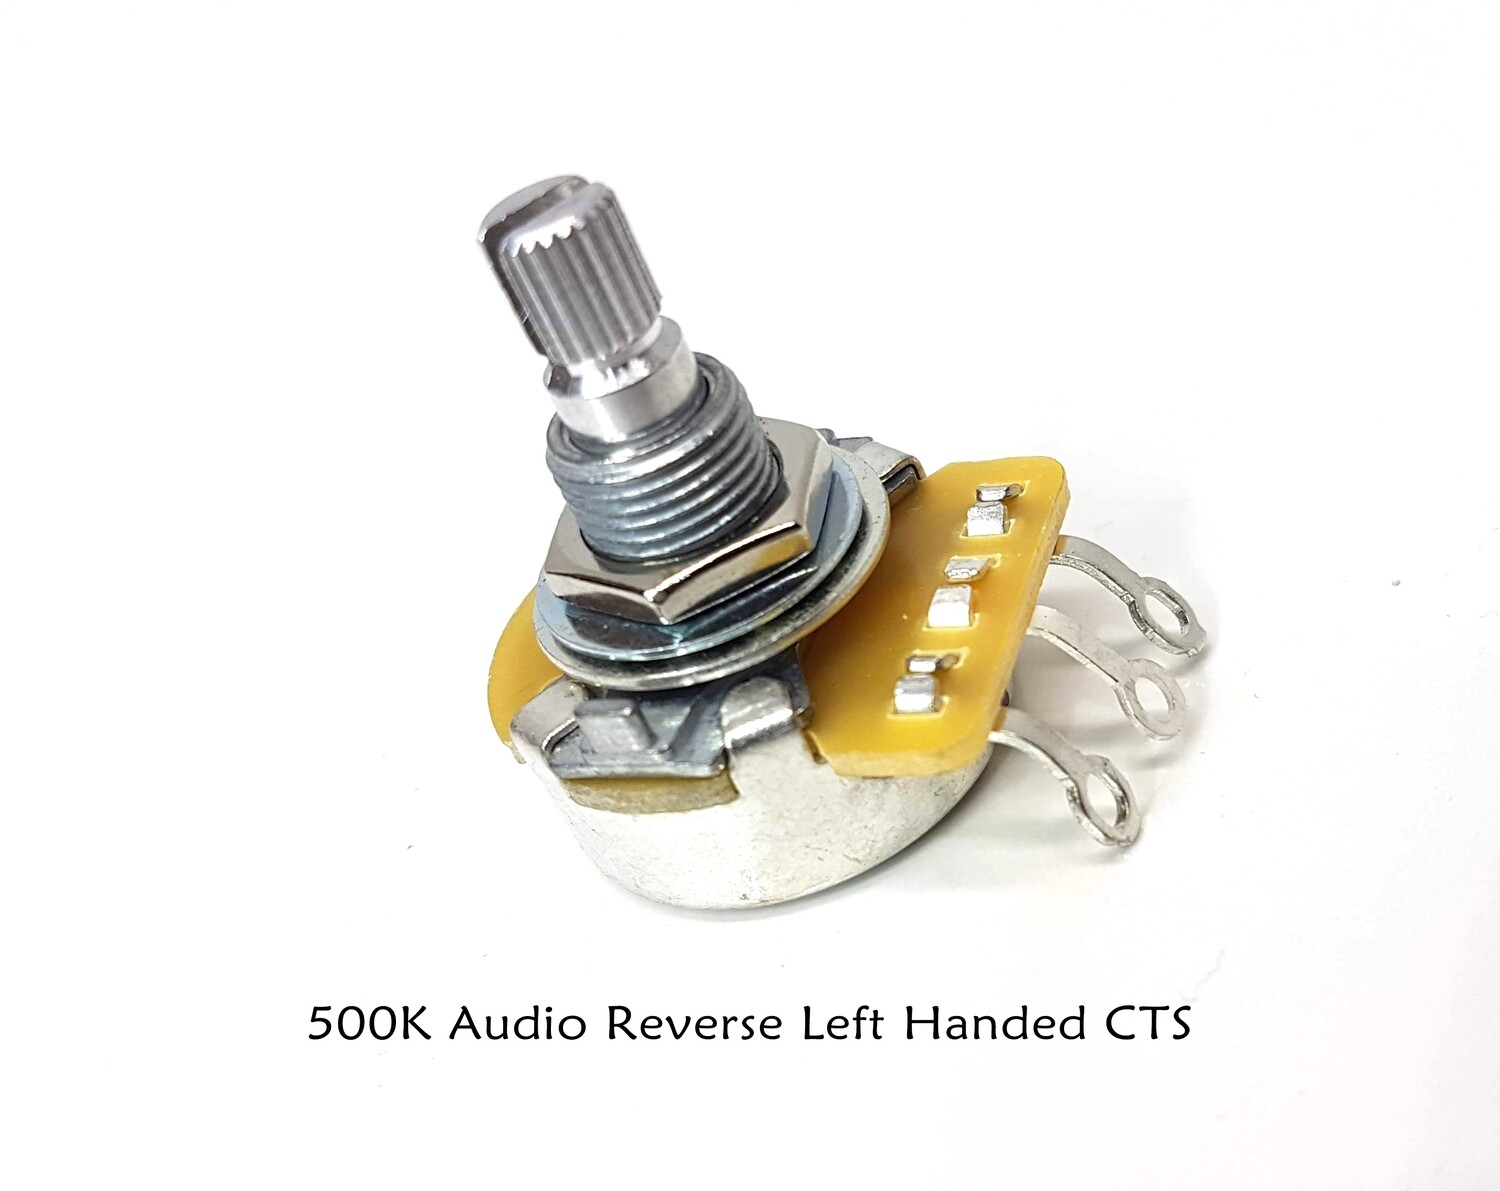 1 Single - LEFT HANDED ( Reverse Audio ) 500K  Split Shaft CTS Potentiometer